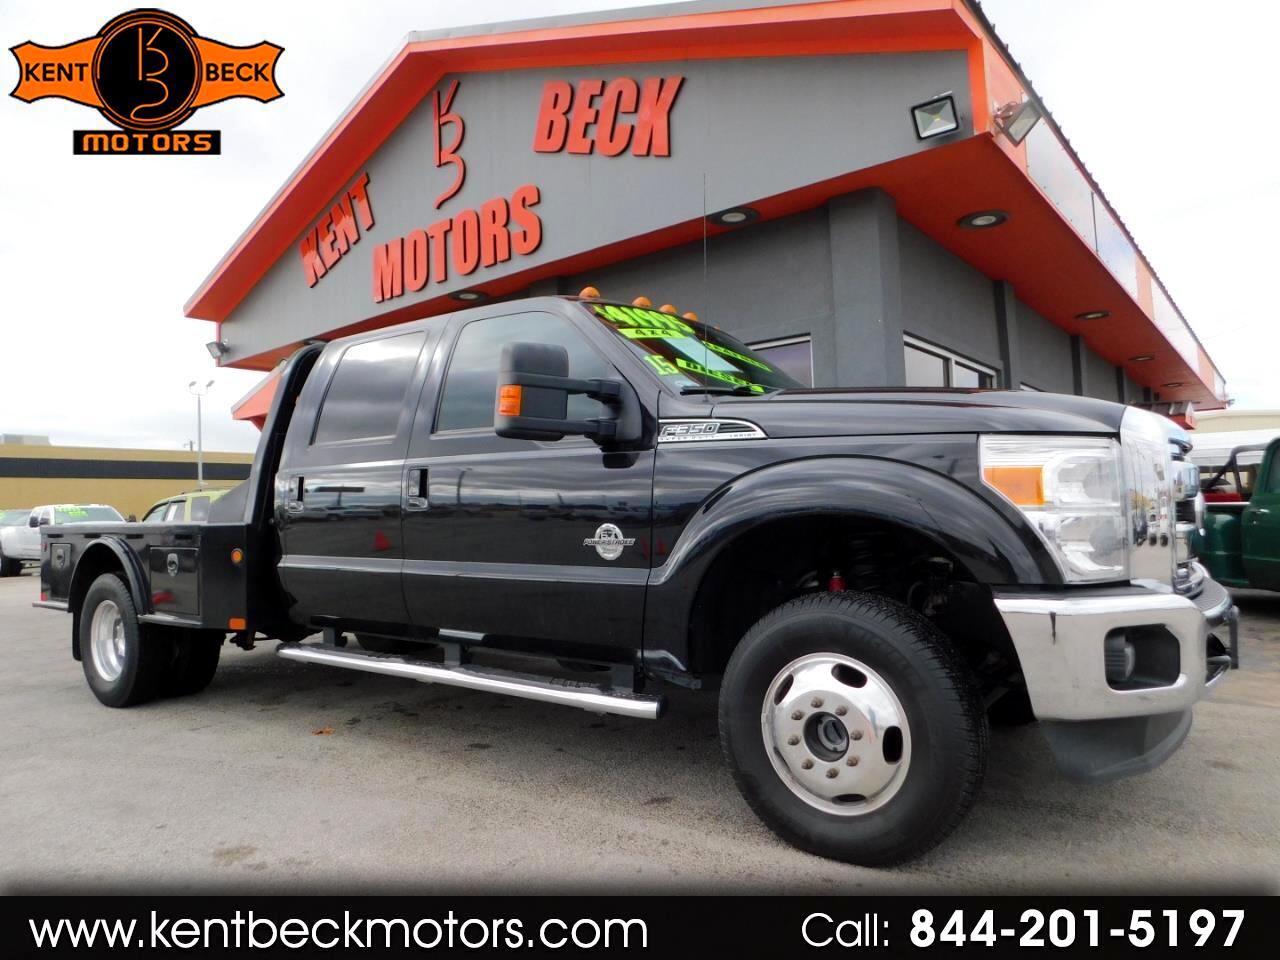 Buy Here Pay Cars For Sale Abilene Tx 79605 Kent Beck Motors 2004 Ford F 250 Lariat Texas 2015 350 Sd Crew Cab Long Bed Drw 4wd